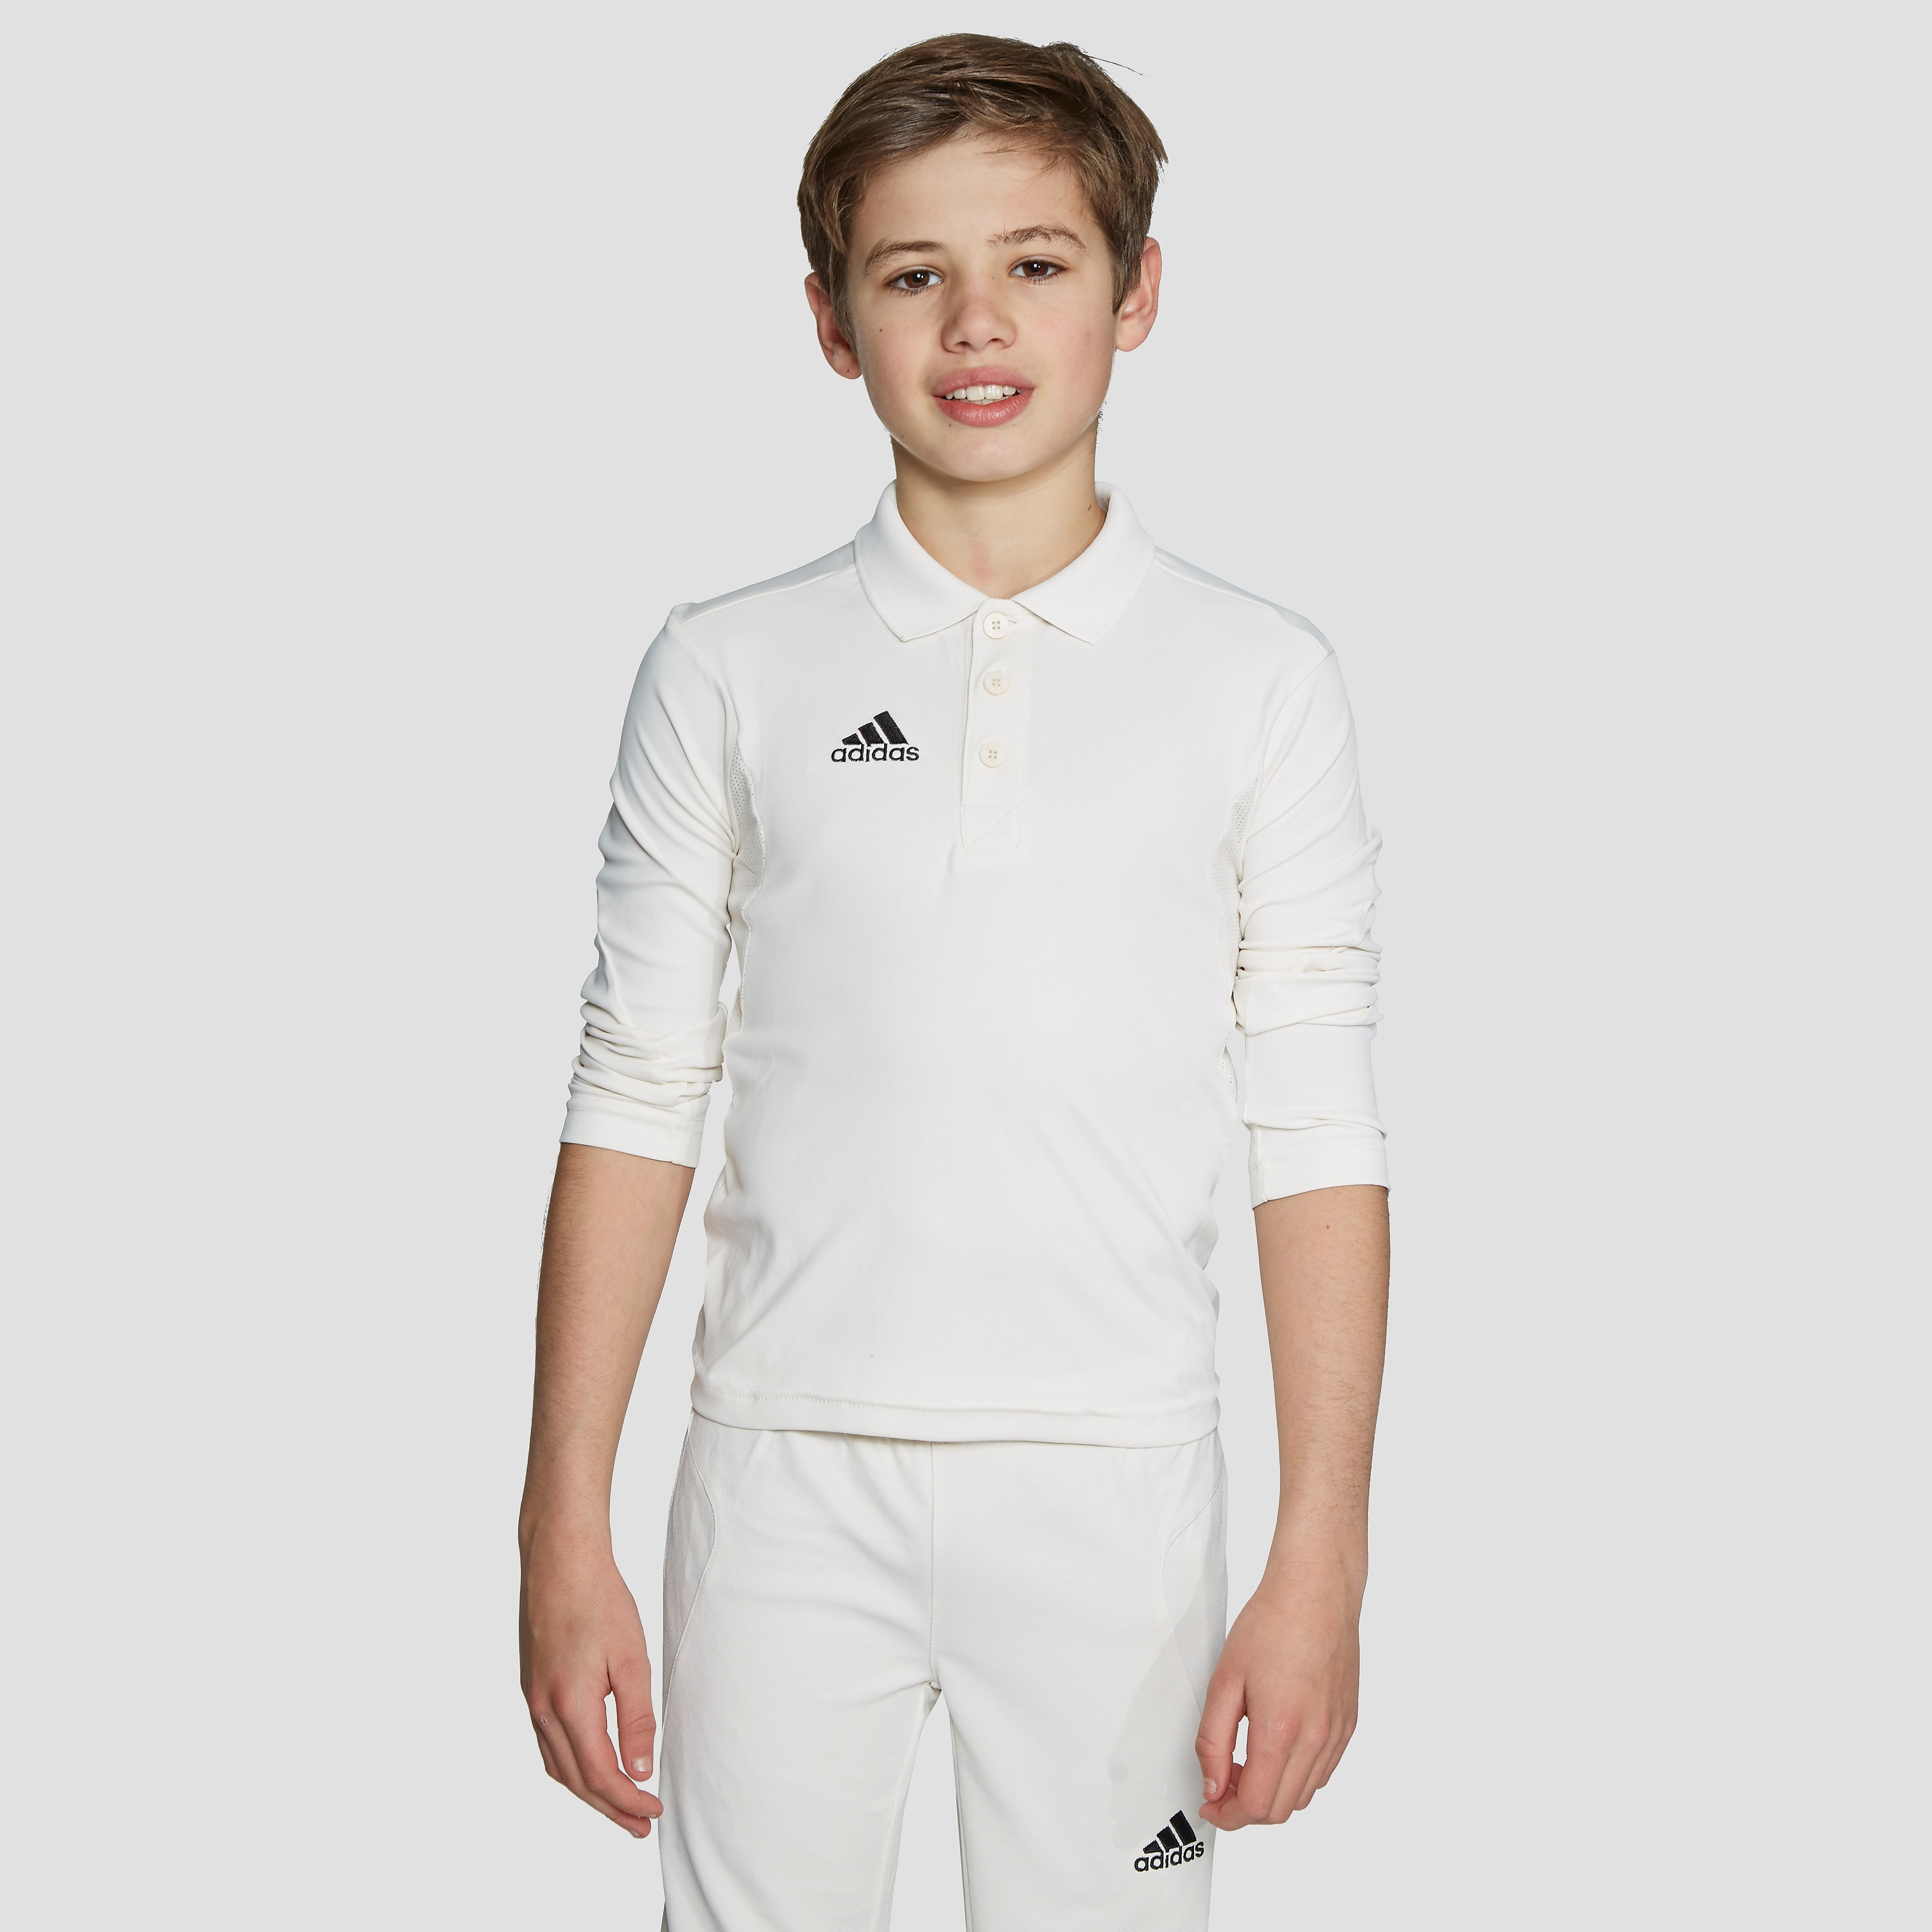 adidas HOWZAT Junior CRICKET Top